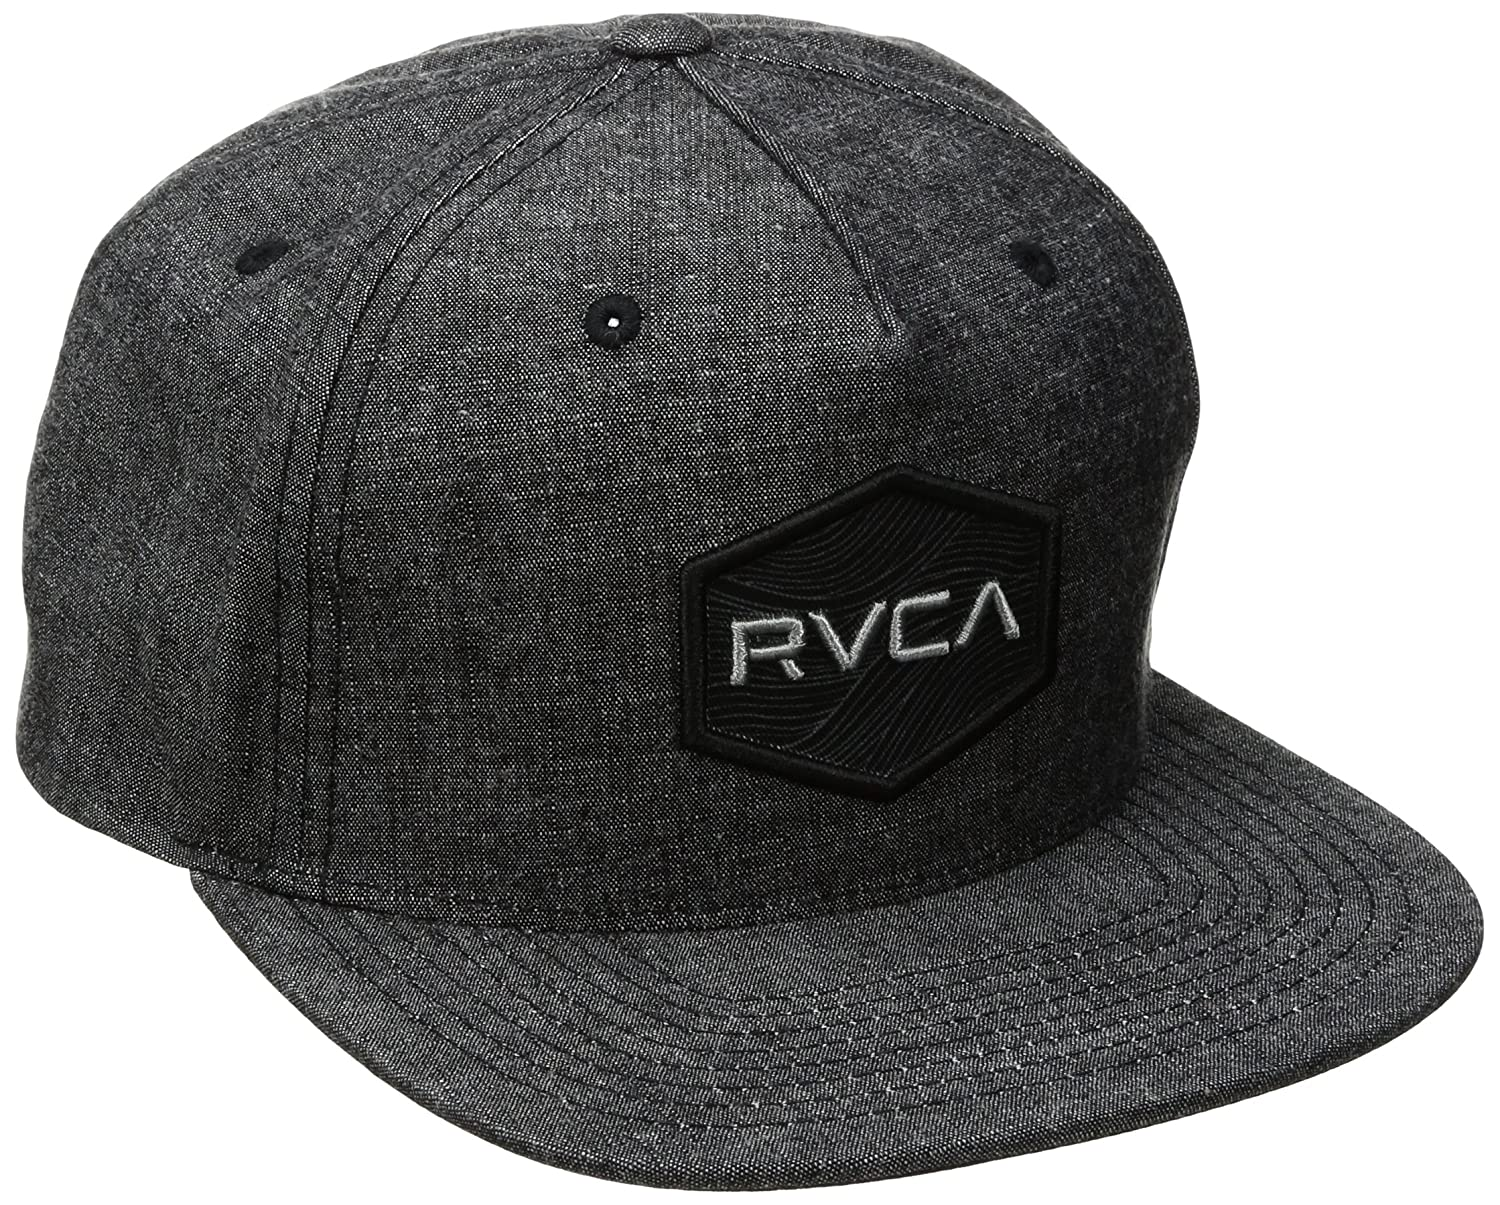 9eb9672ff83 Amazon.com  RVCA Men s Commonwealth Snapback Hat  Clothing